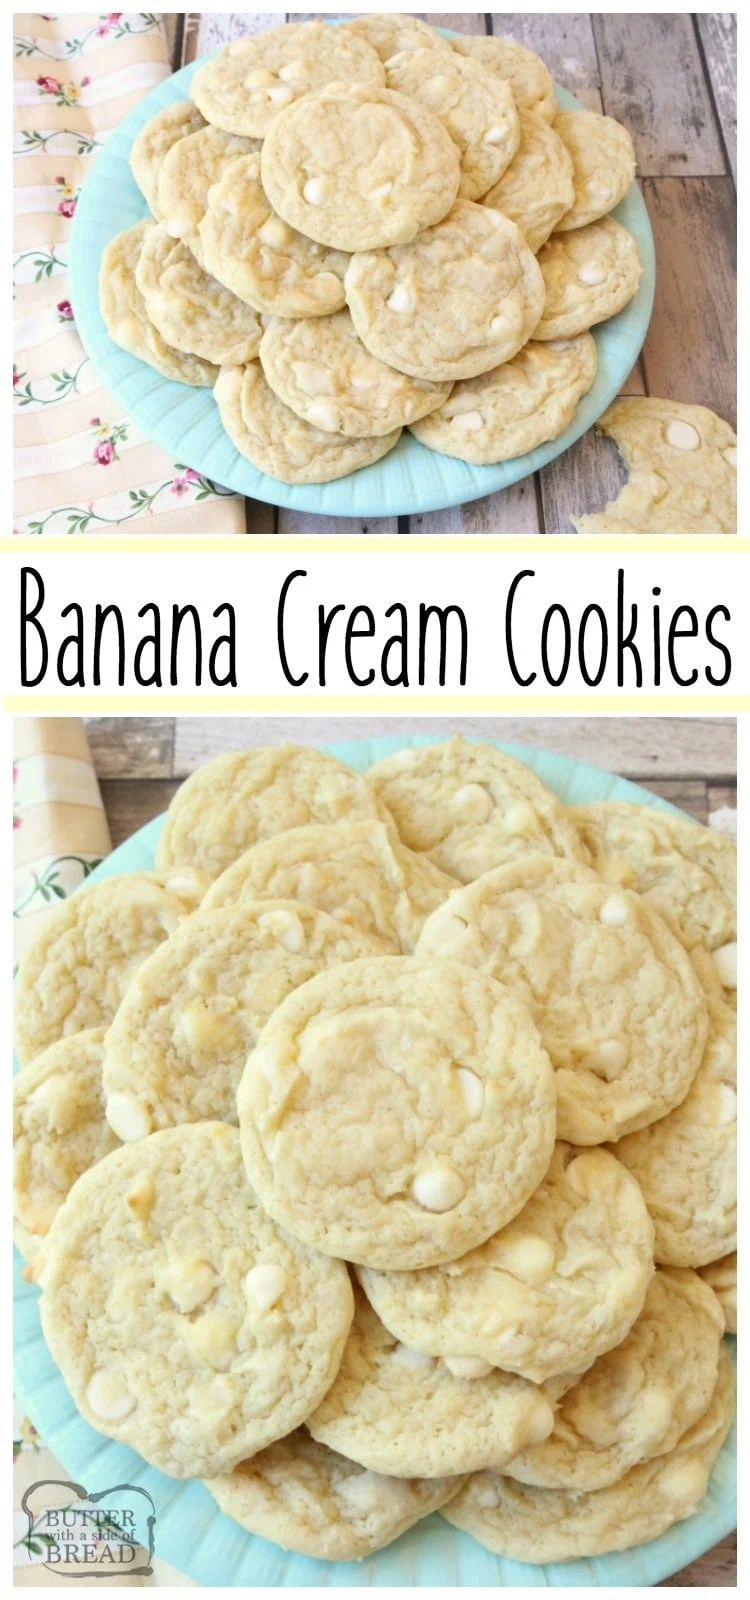 Banana Cream Cookies recipe incorporates banana pudding mix & banana into delectable cookies! Simple recipe for soft, flavorful & perfectly sweet cookies. Fabulous #banana #cookie recipe from Butter With A Side of Bread